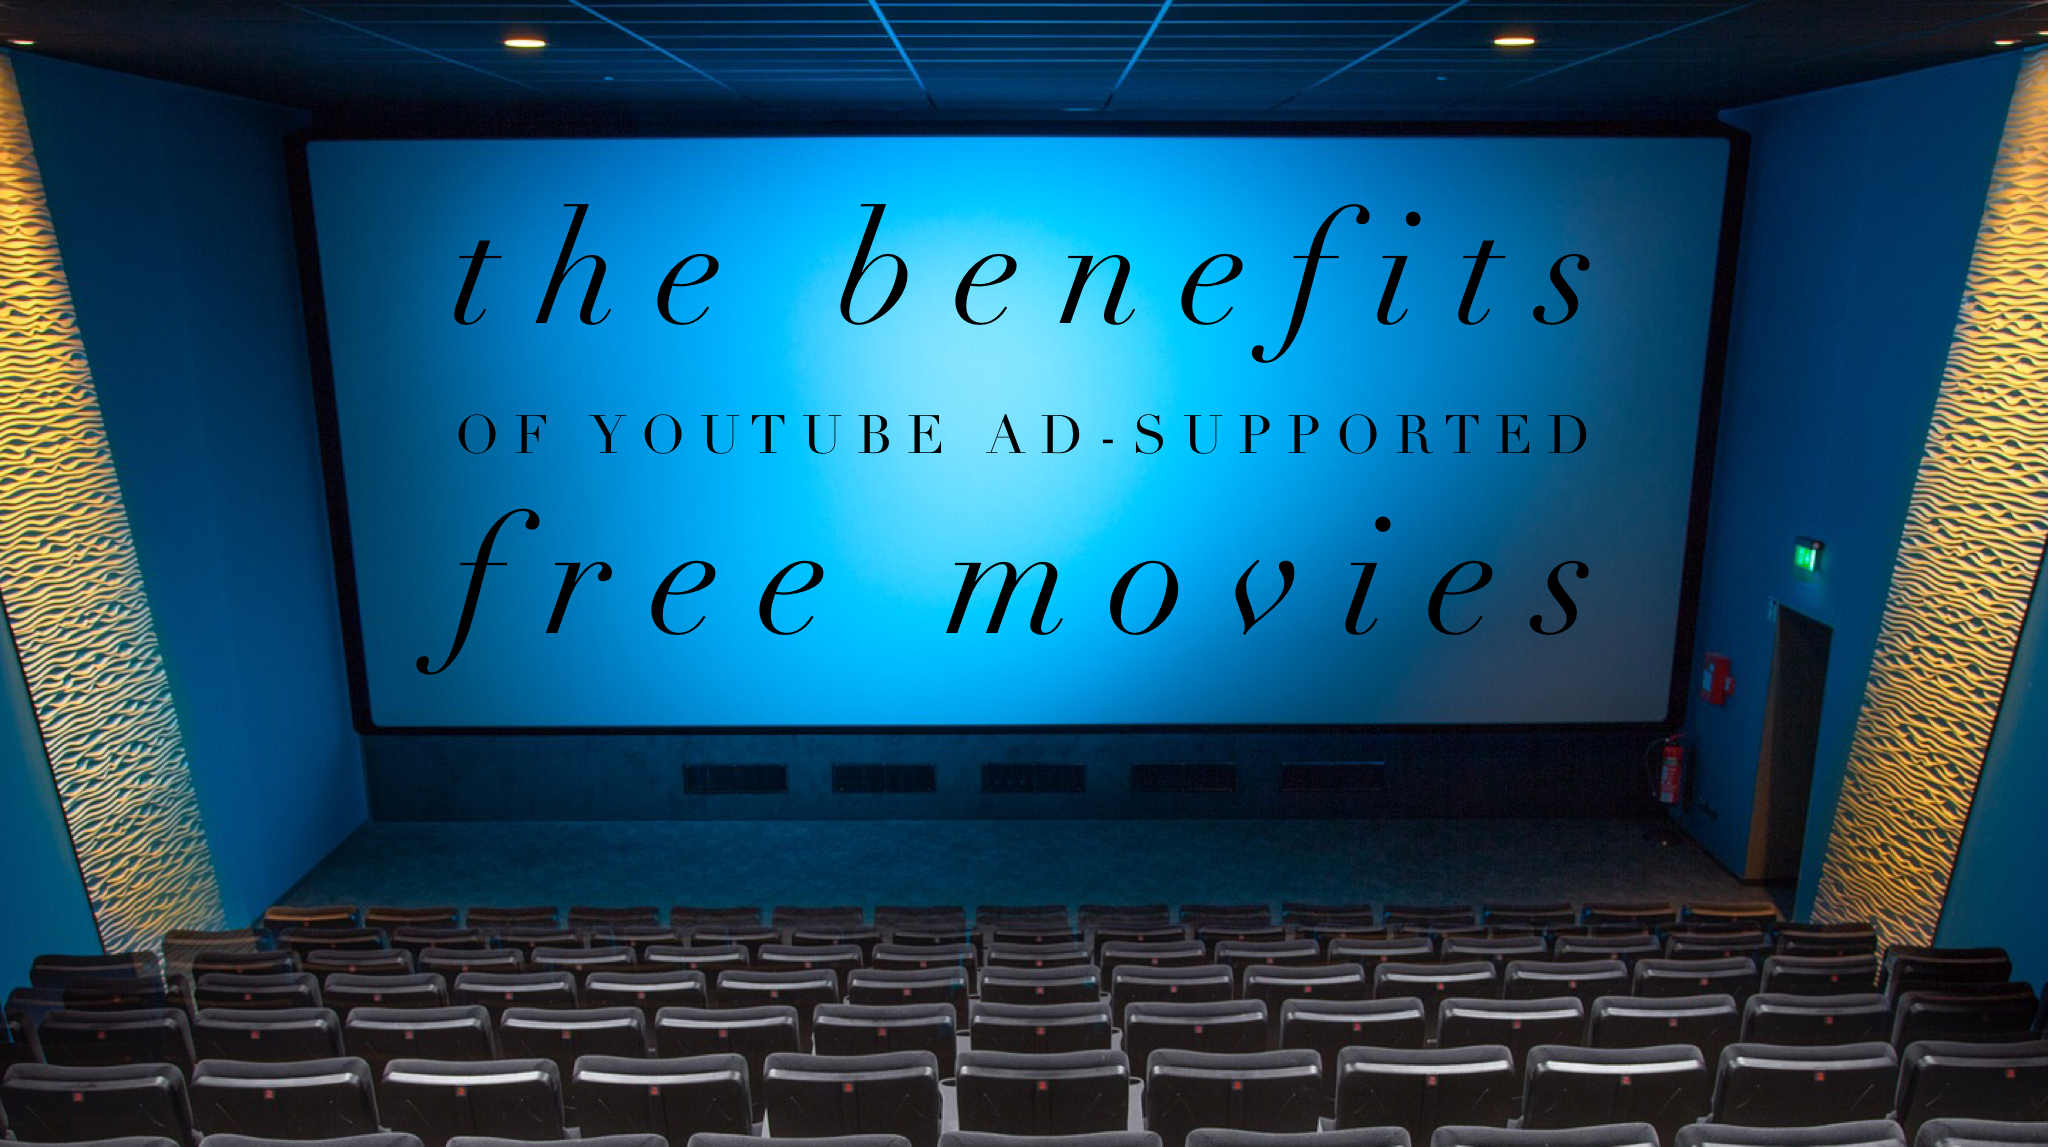 The Benefits of Youtube Ad-Supported Free Movies